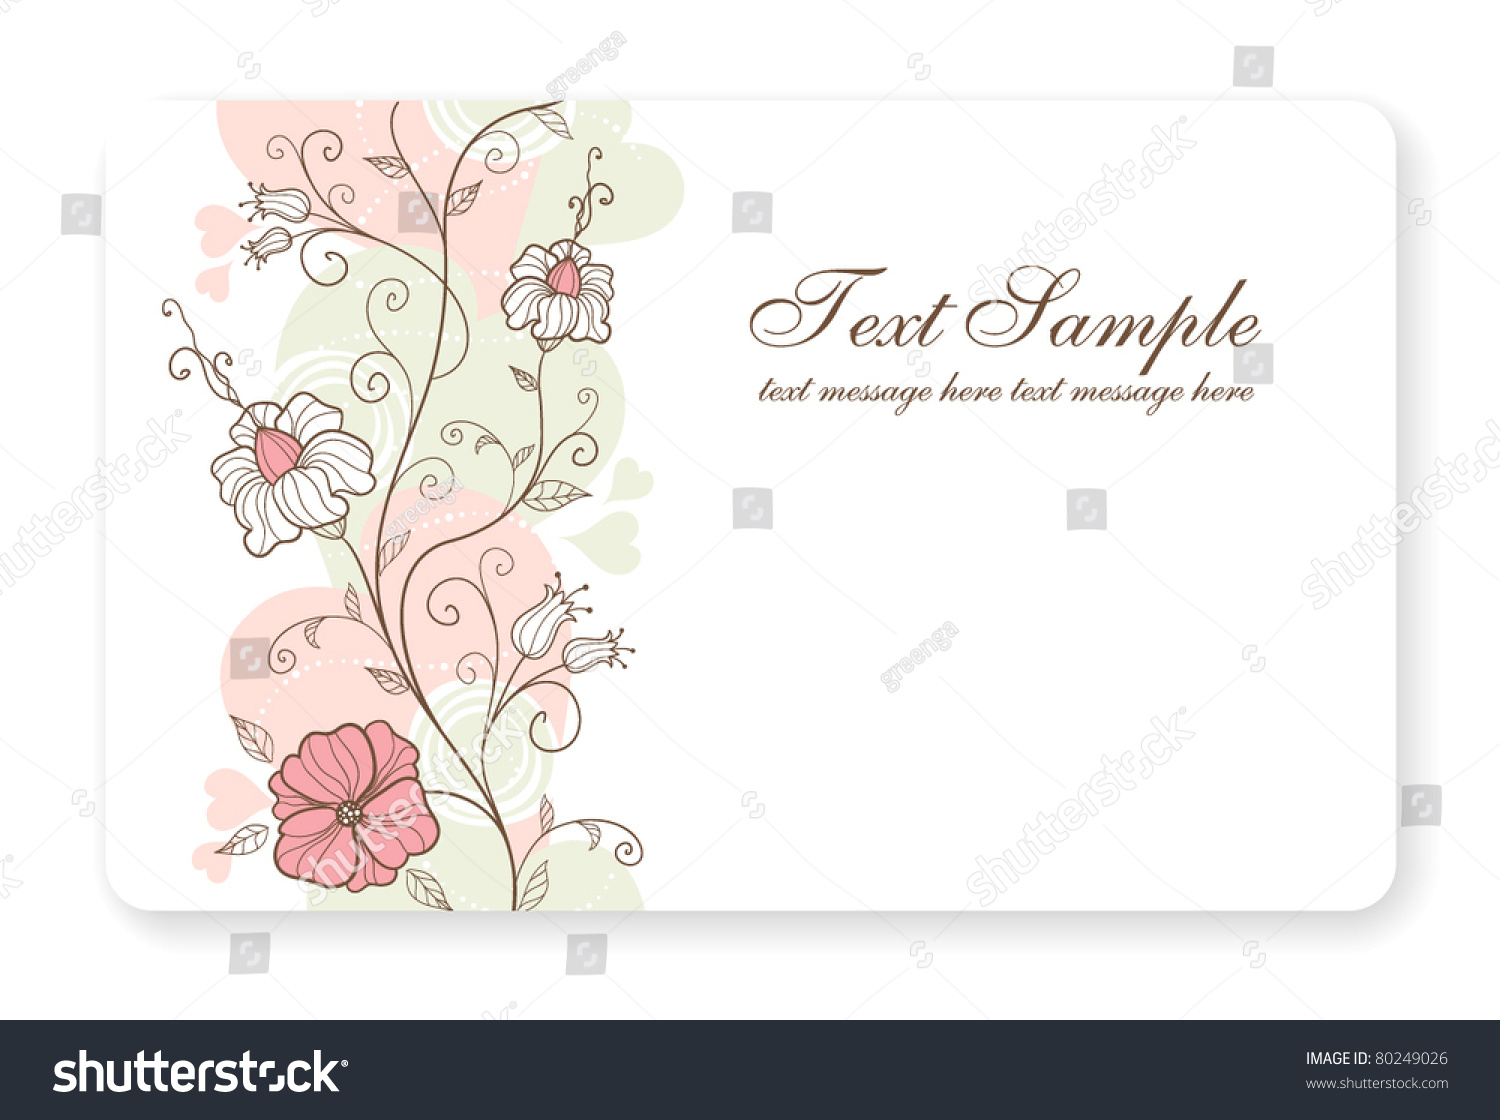 Royalty-free Credit card / business card background… #80249026 ...